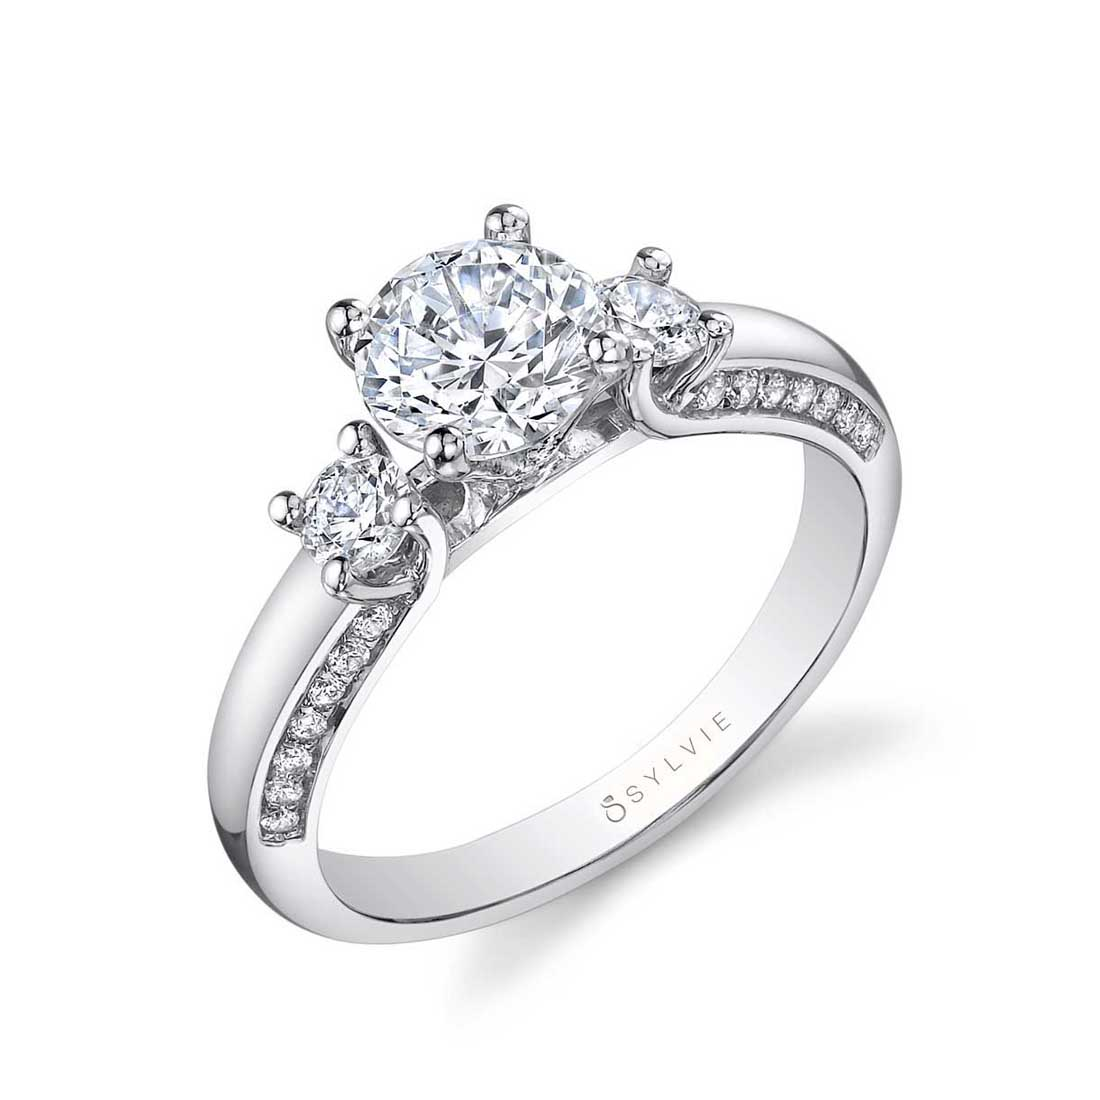 3 Stone Engagement Ring with Halo